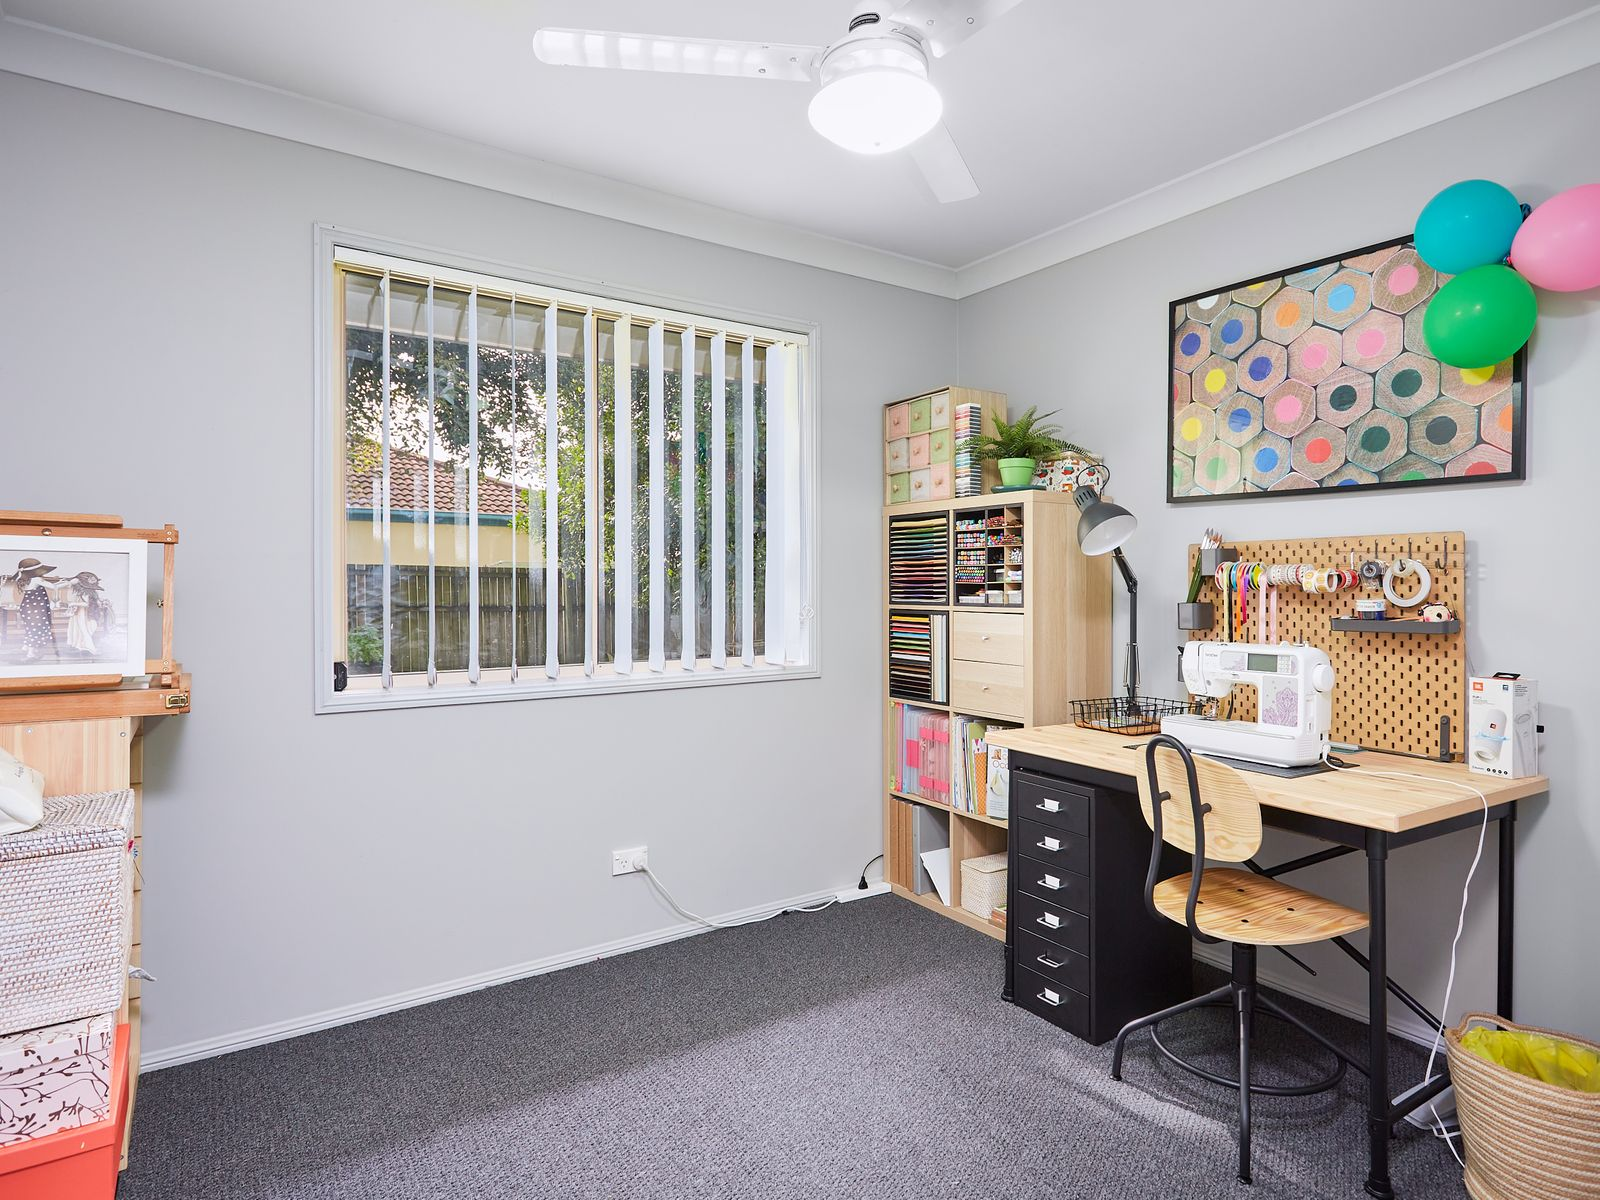 14 Hialeah Crescent, Helensvale, QLD 4212